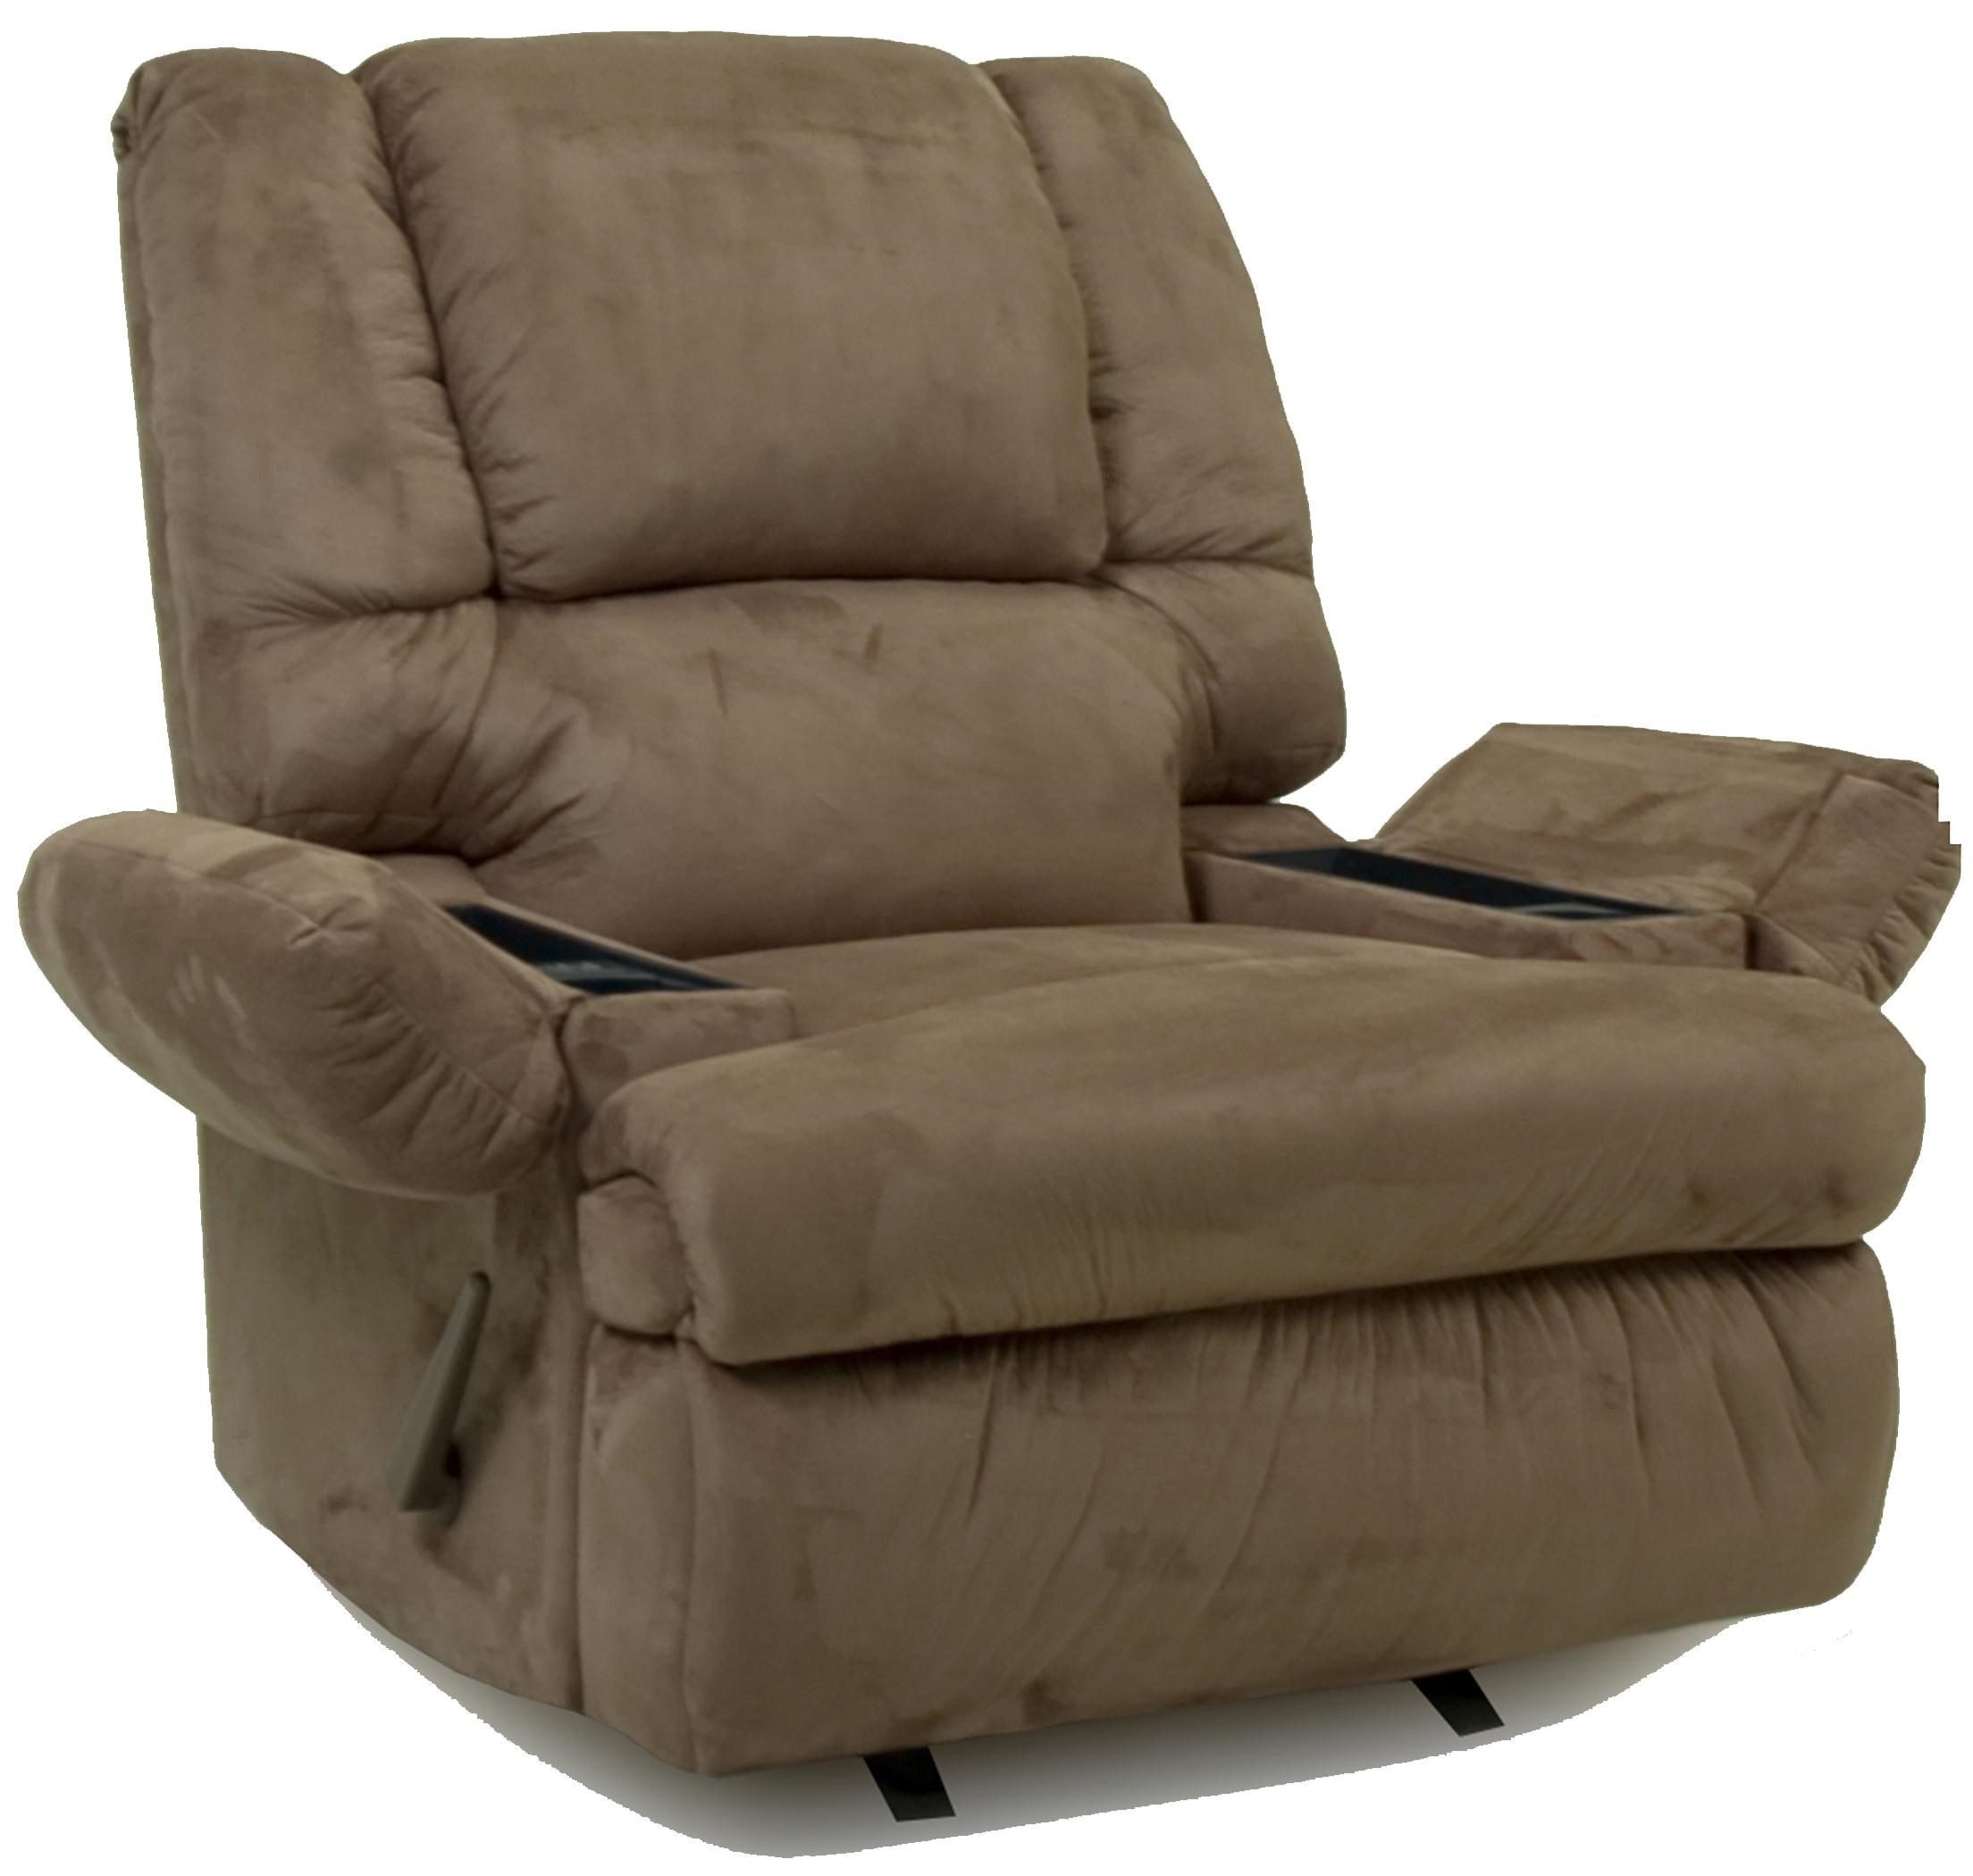 Franklin Rocker Recliners 5598 Power Chaise Rocker Recliner with Storage Arms  sc 1 st  Wilcox Furniture & 5598 Power Chaise Rocker Recliner with Storage Arms - Rocker ... islam-shia.org